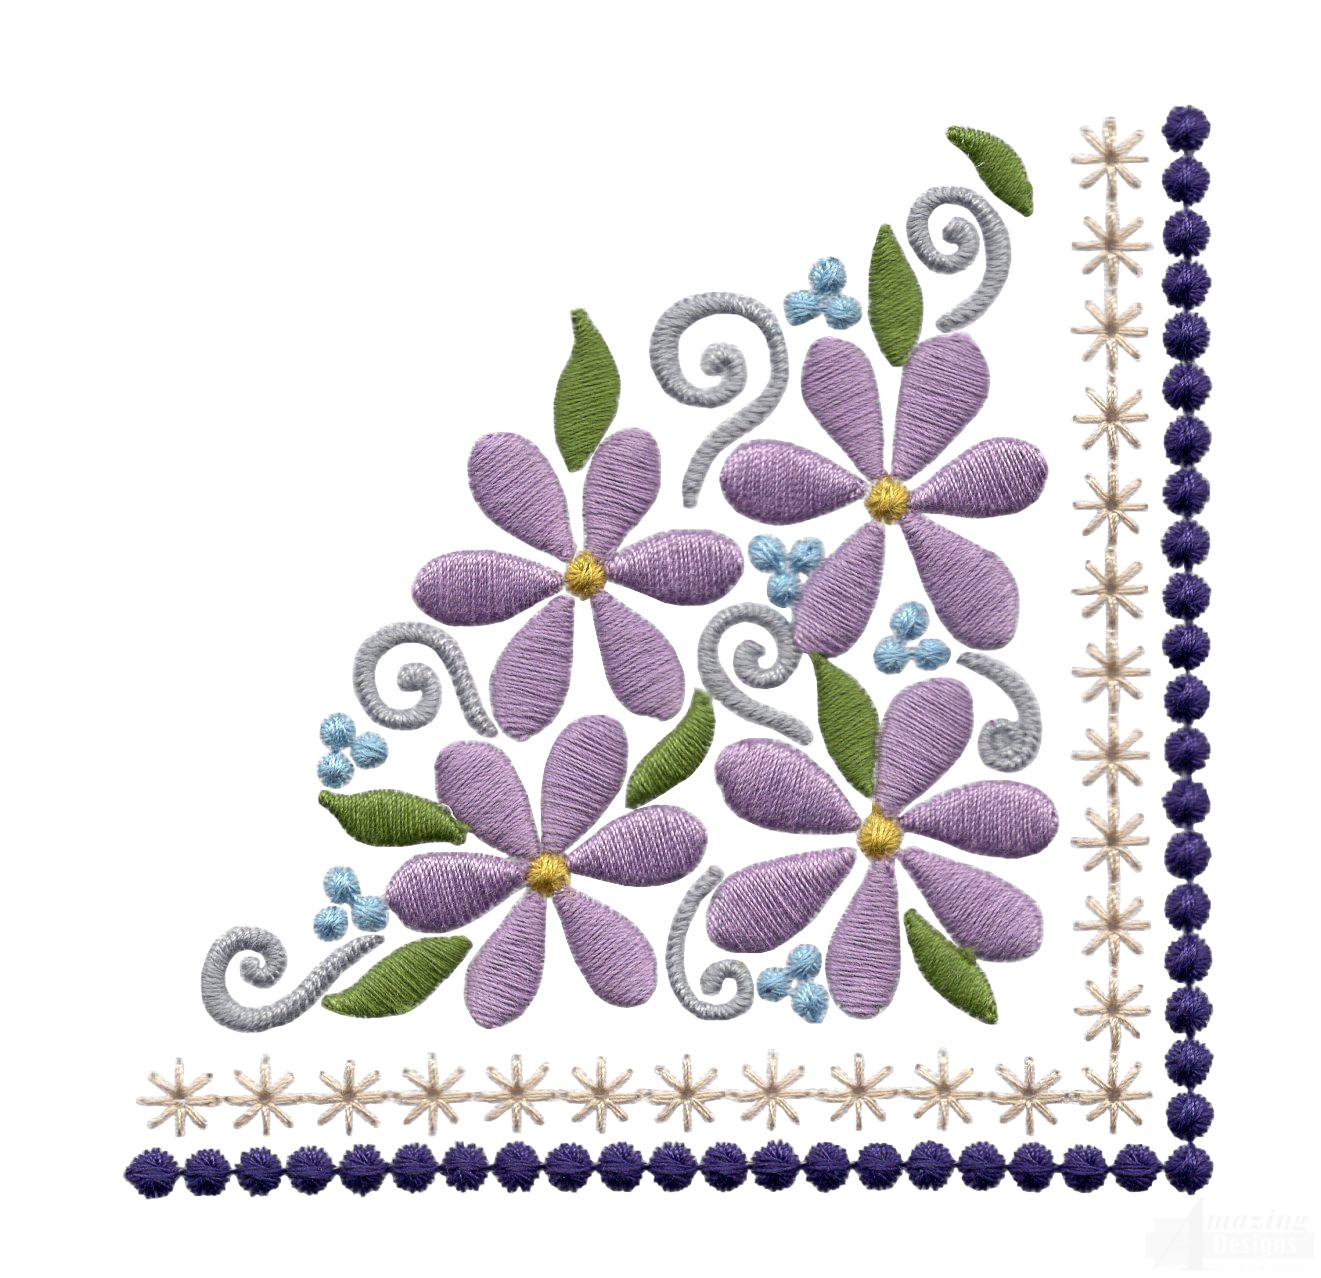 Flowering Eyelet Corner 1 Embroidery Design